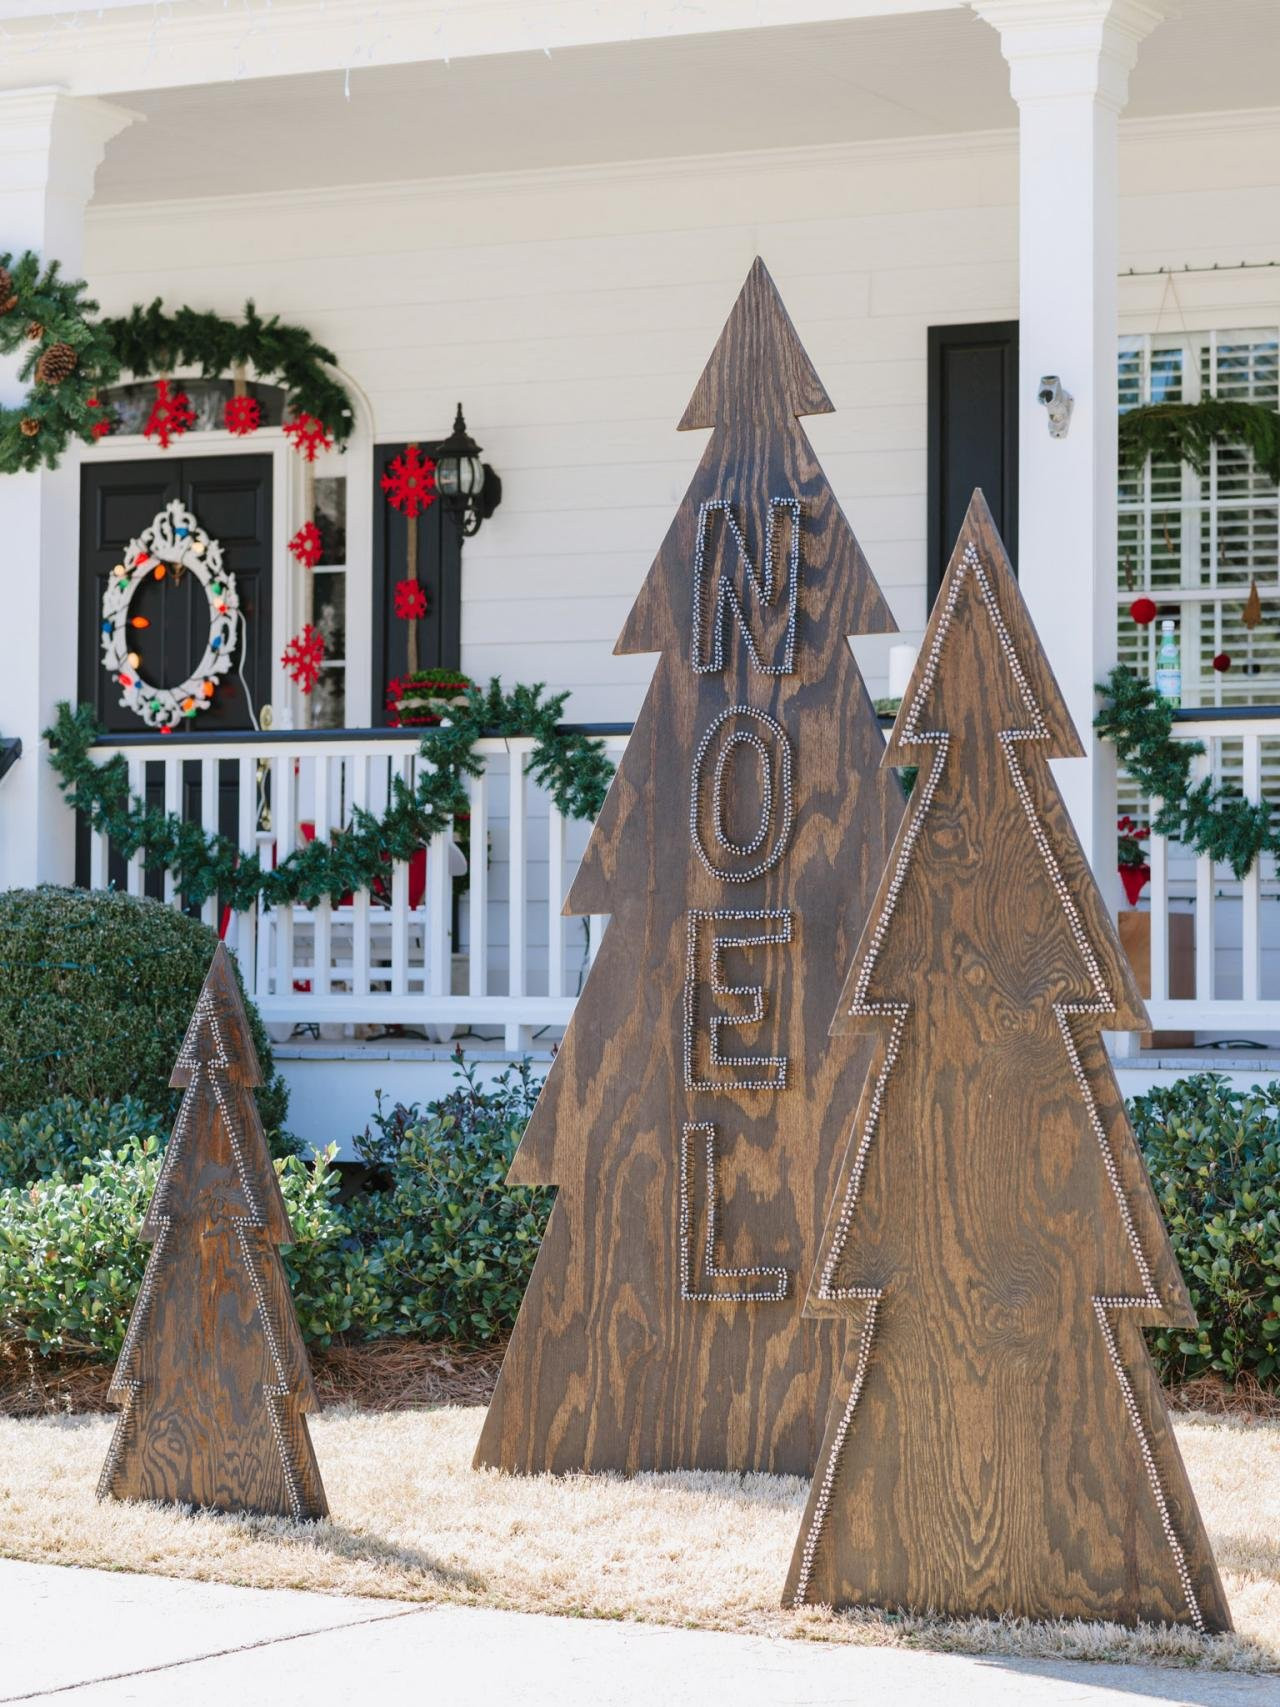 Best ideas about Outdoor Christmas Decor . Save or Pin 30 Best Outdoor Christmas Decorations Ideas Now.